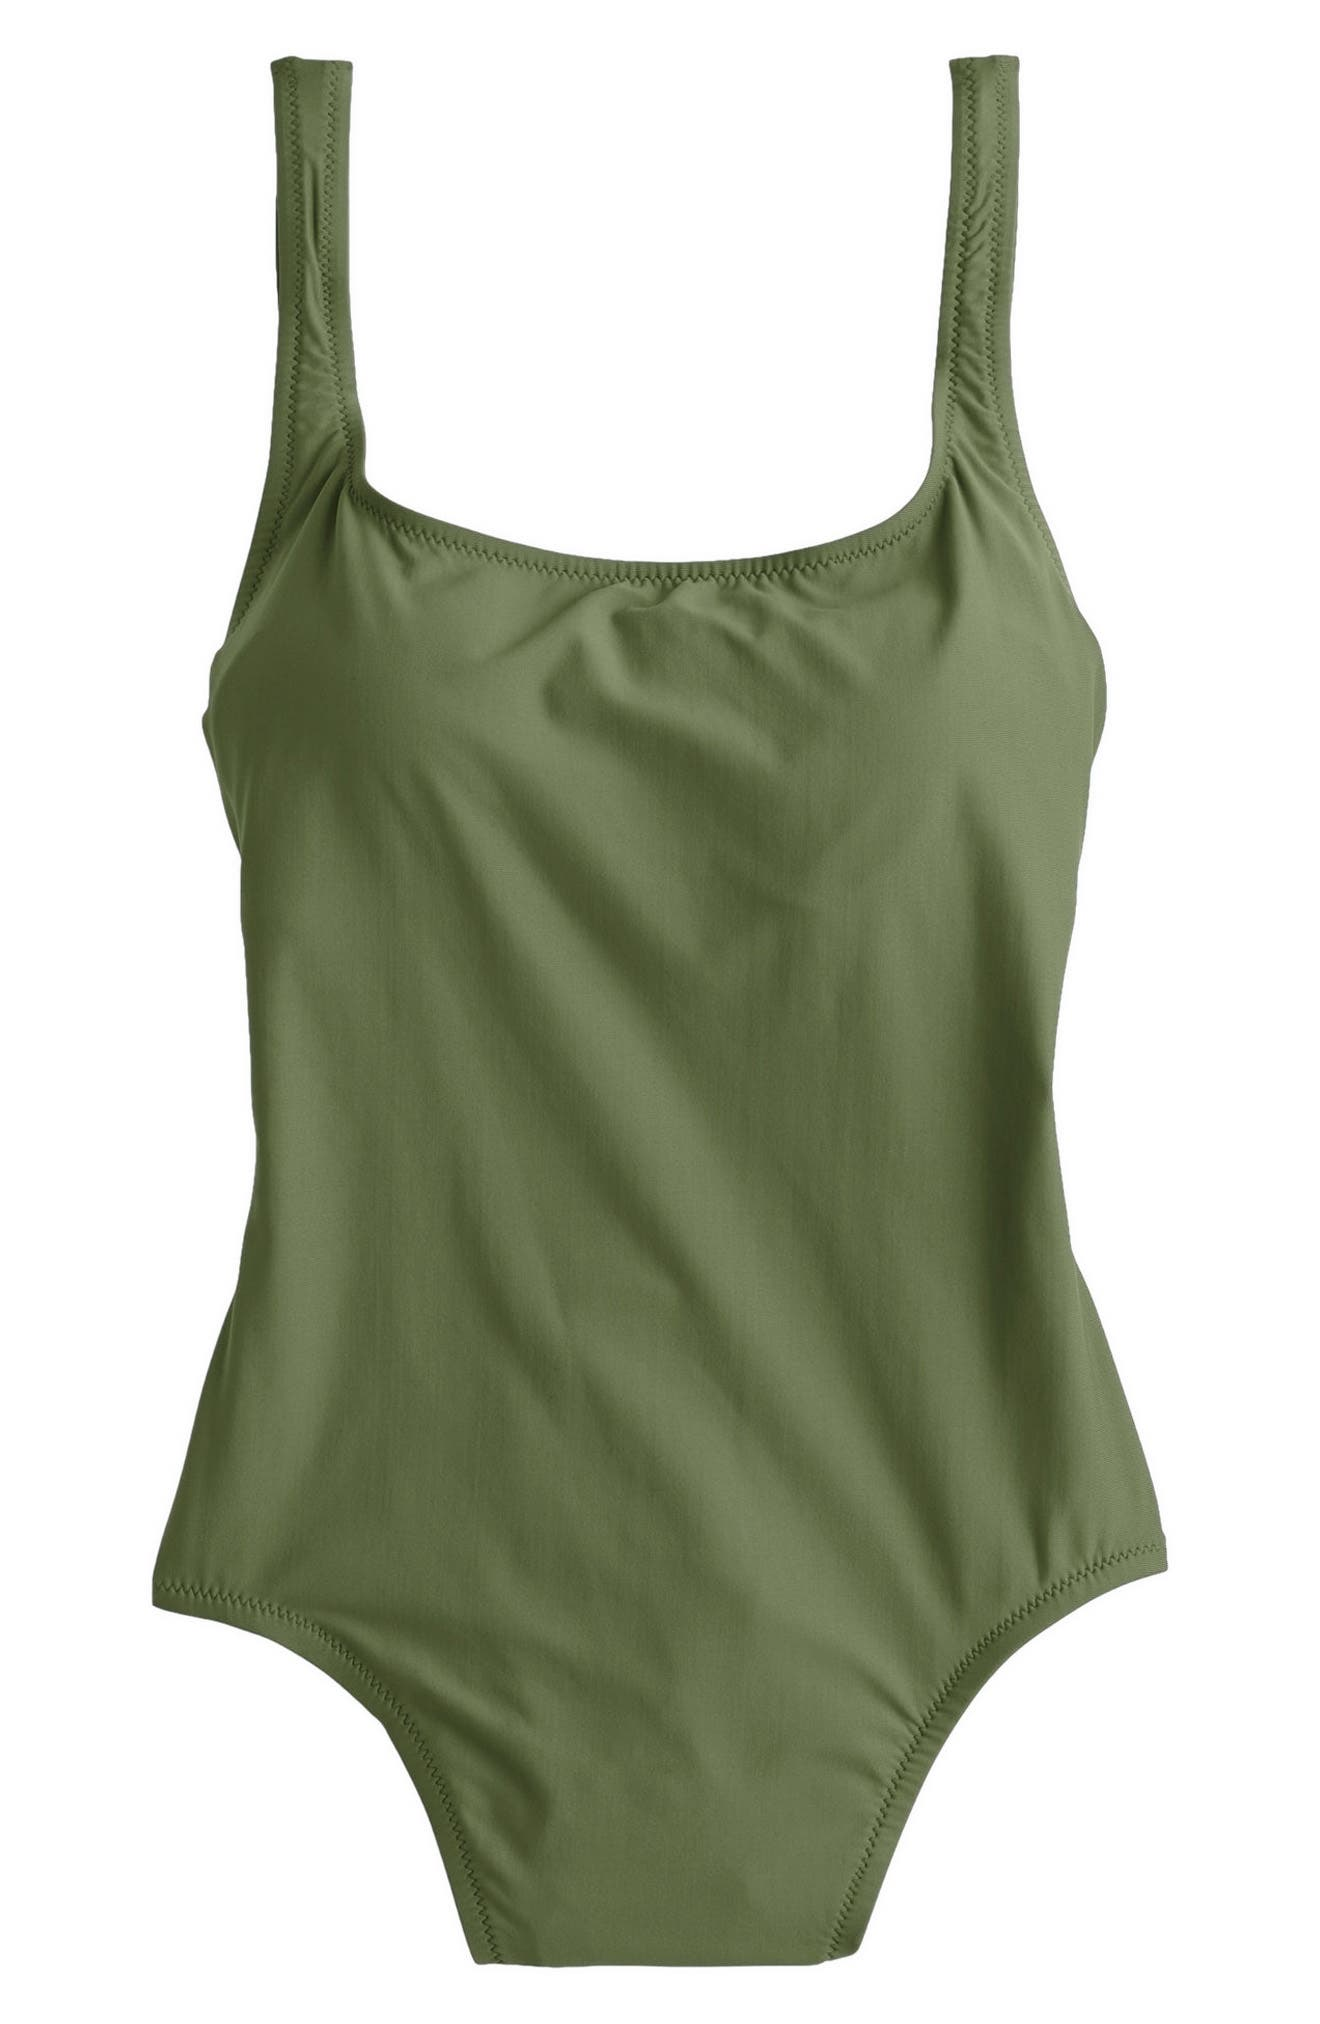 Tactel<sup>®</sup> Nylon One-Piece Swimsuit,                             Main thumbnail 1, color,                             300